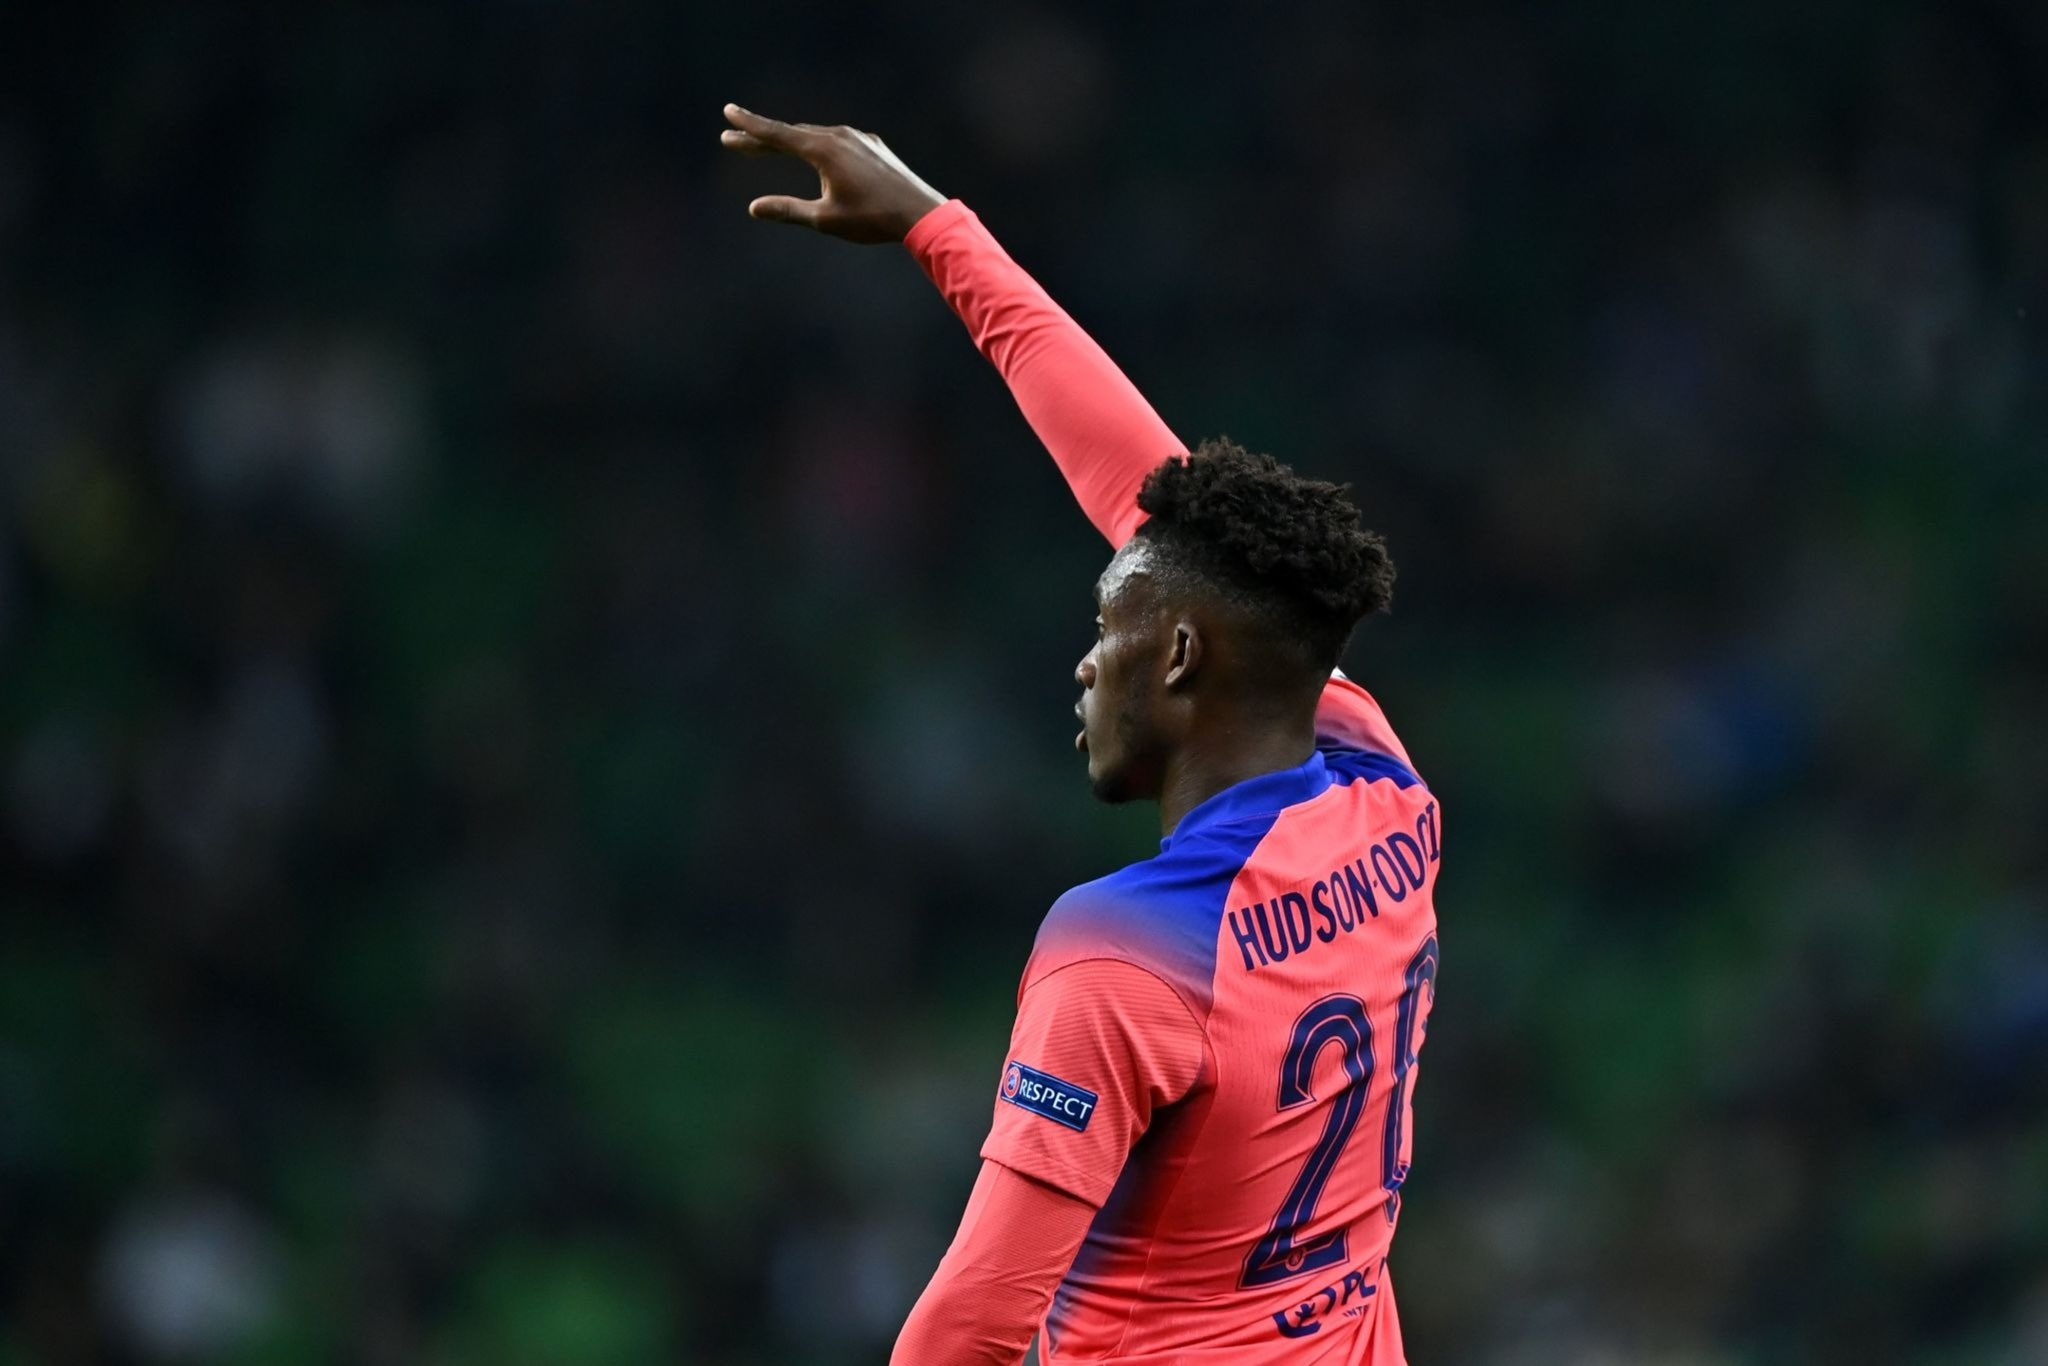 Lampard provides Hudson-Odoi injury update after he is spotted with ice on his leg